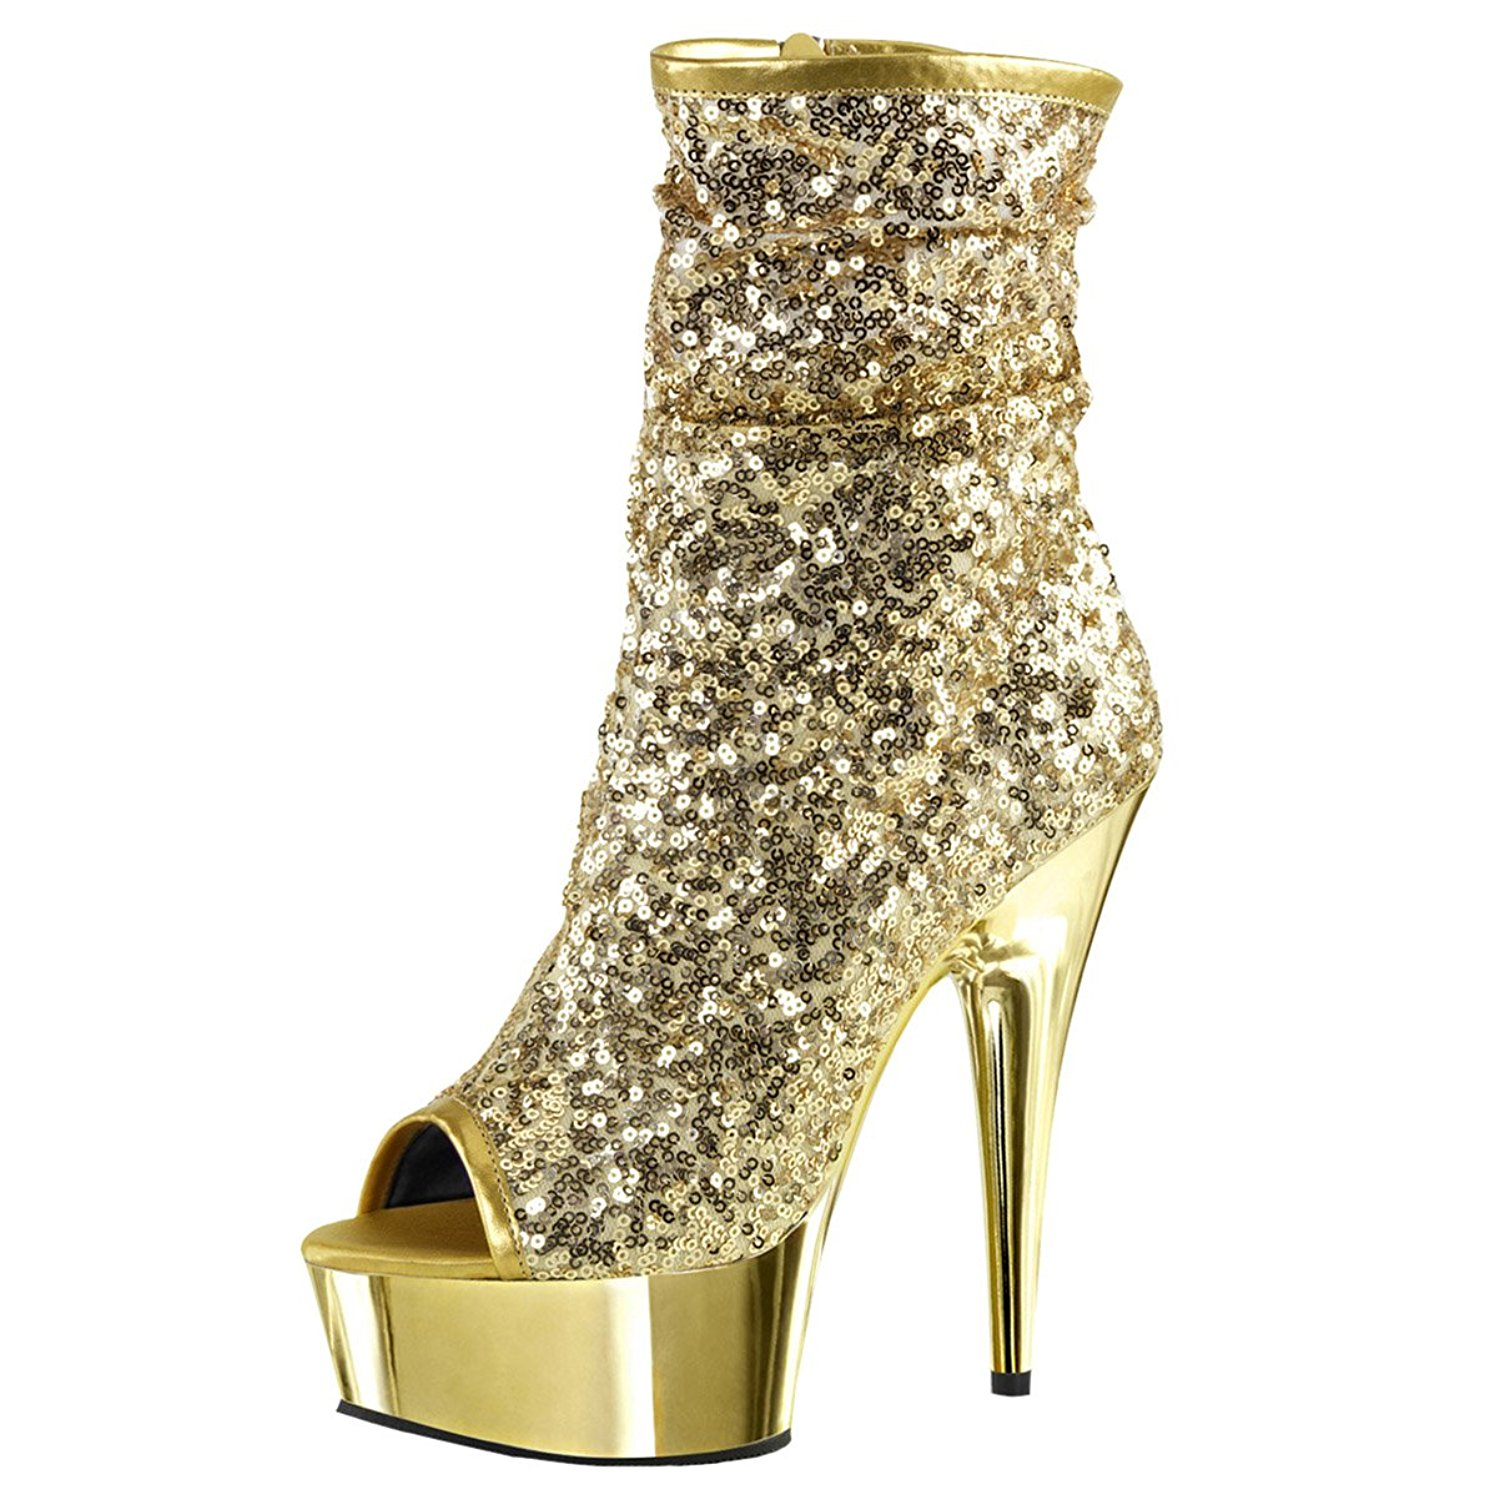 7be0b0e2a0 Get Quotations · Summitfashions Womens Gold Sparkly Heels Sequin Platform  Boots Zip Peep Toe Shoes 6 inch Heels